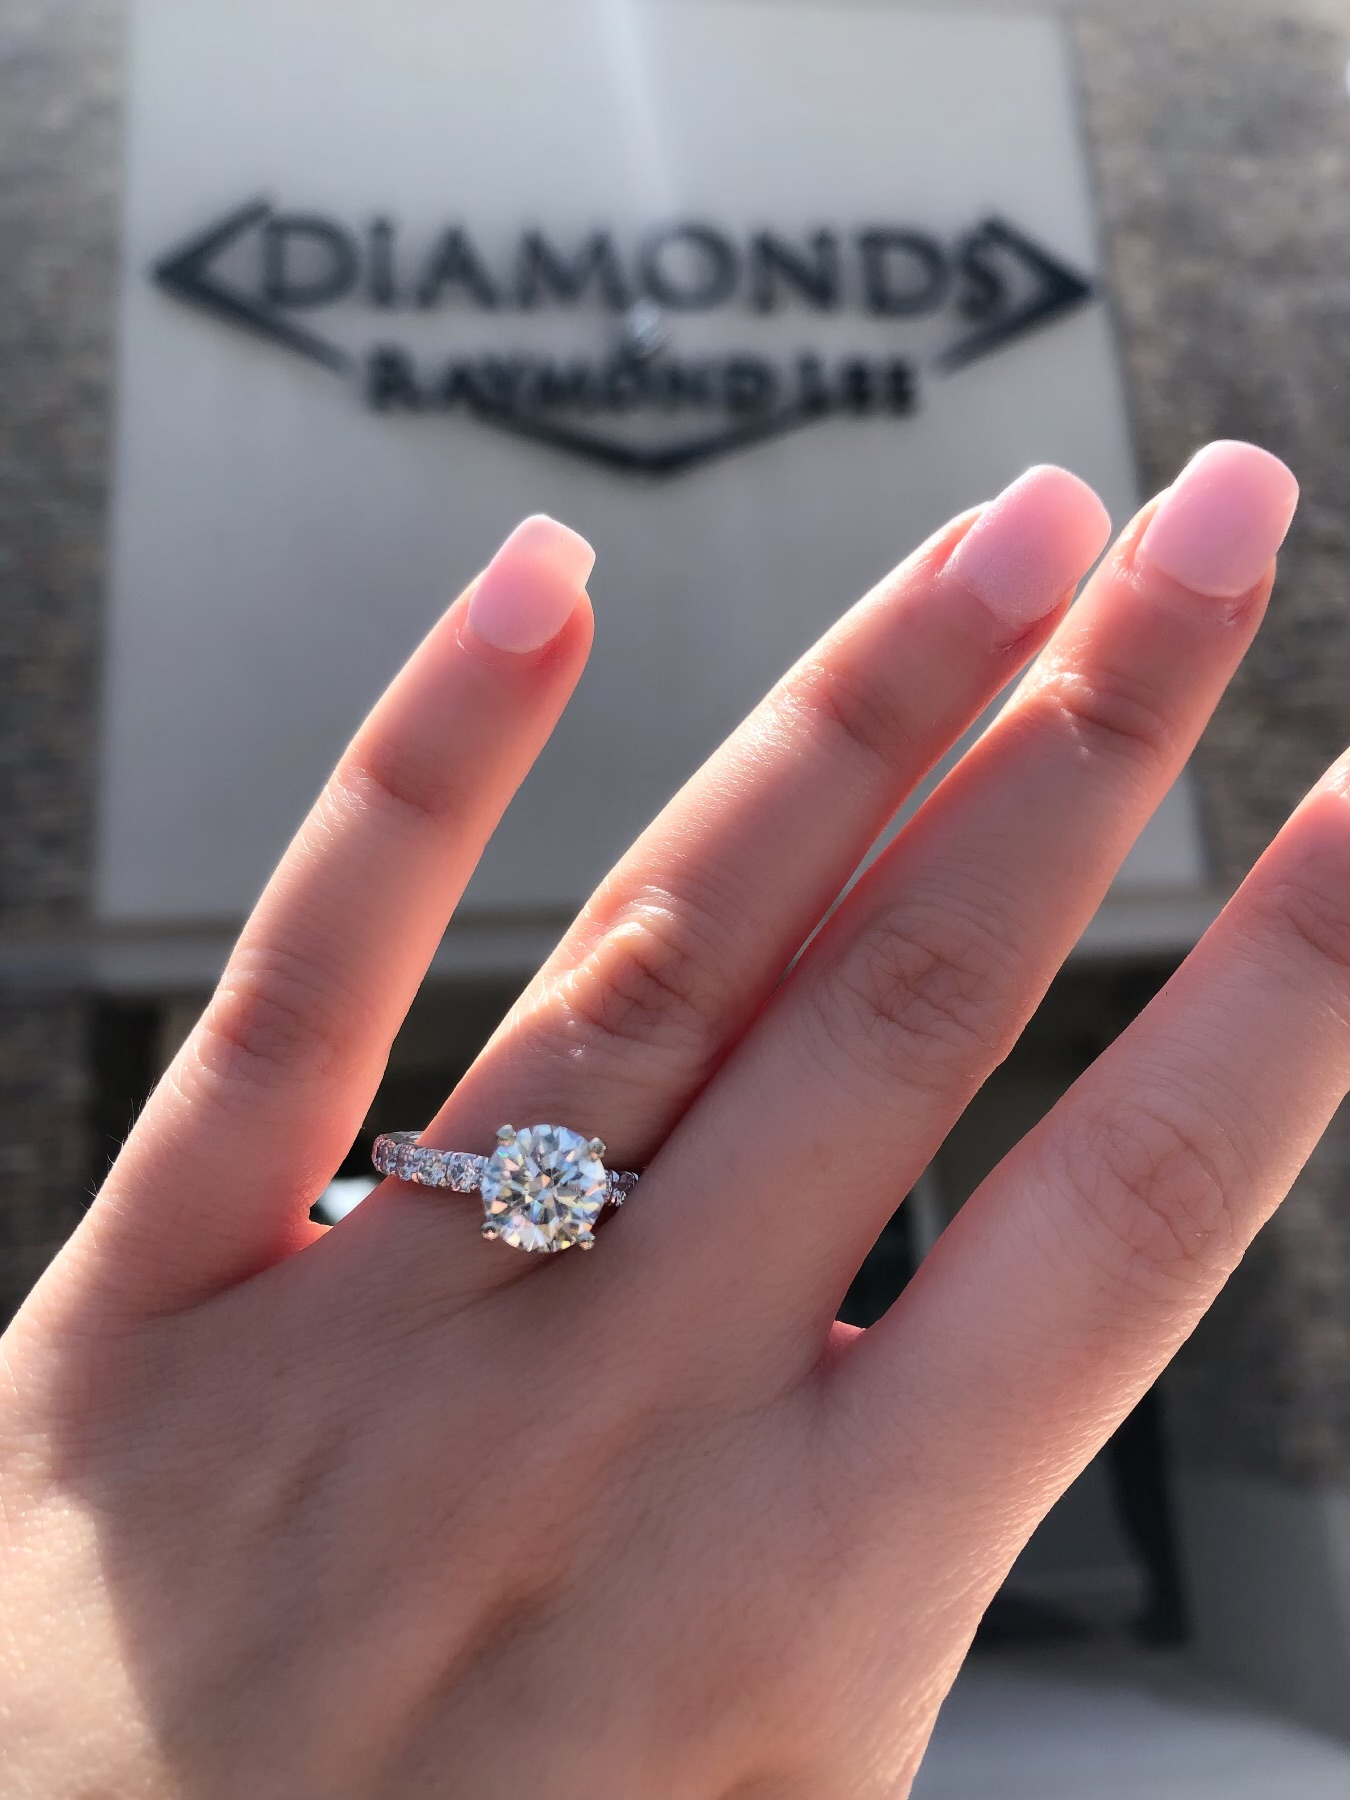 solitaire engagement ring in front of diamonds by raymond lee where you can find how much to spend on an engagement ring